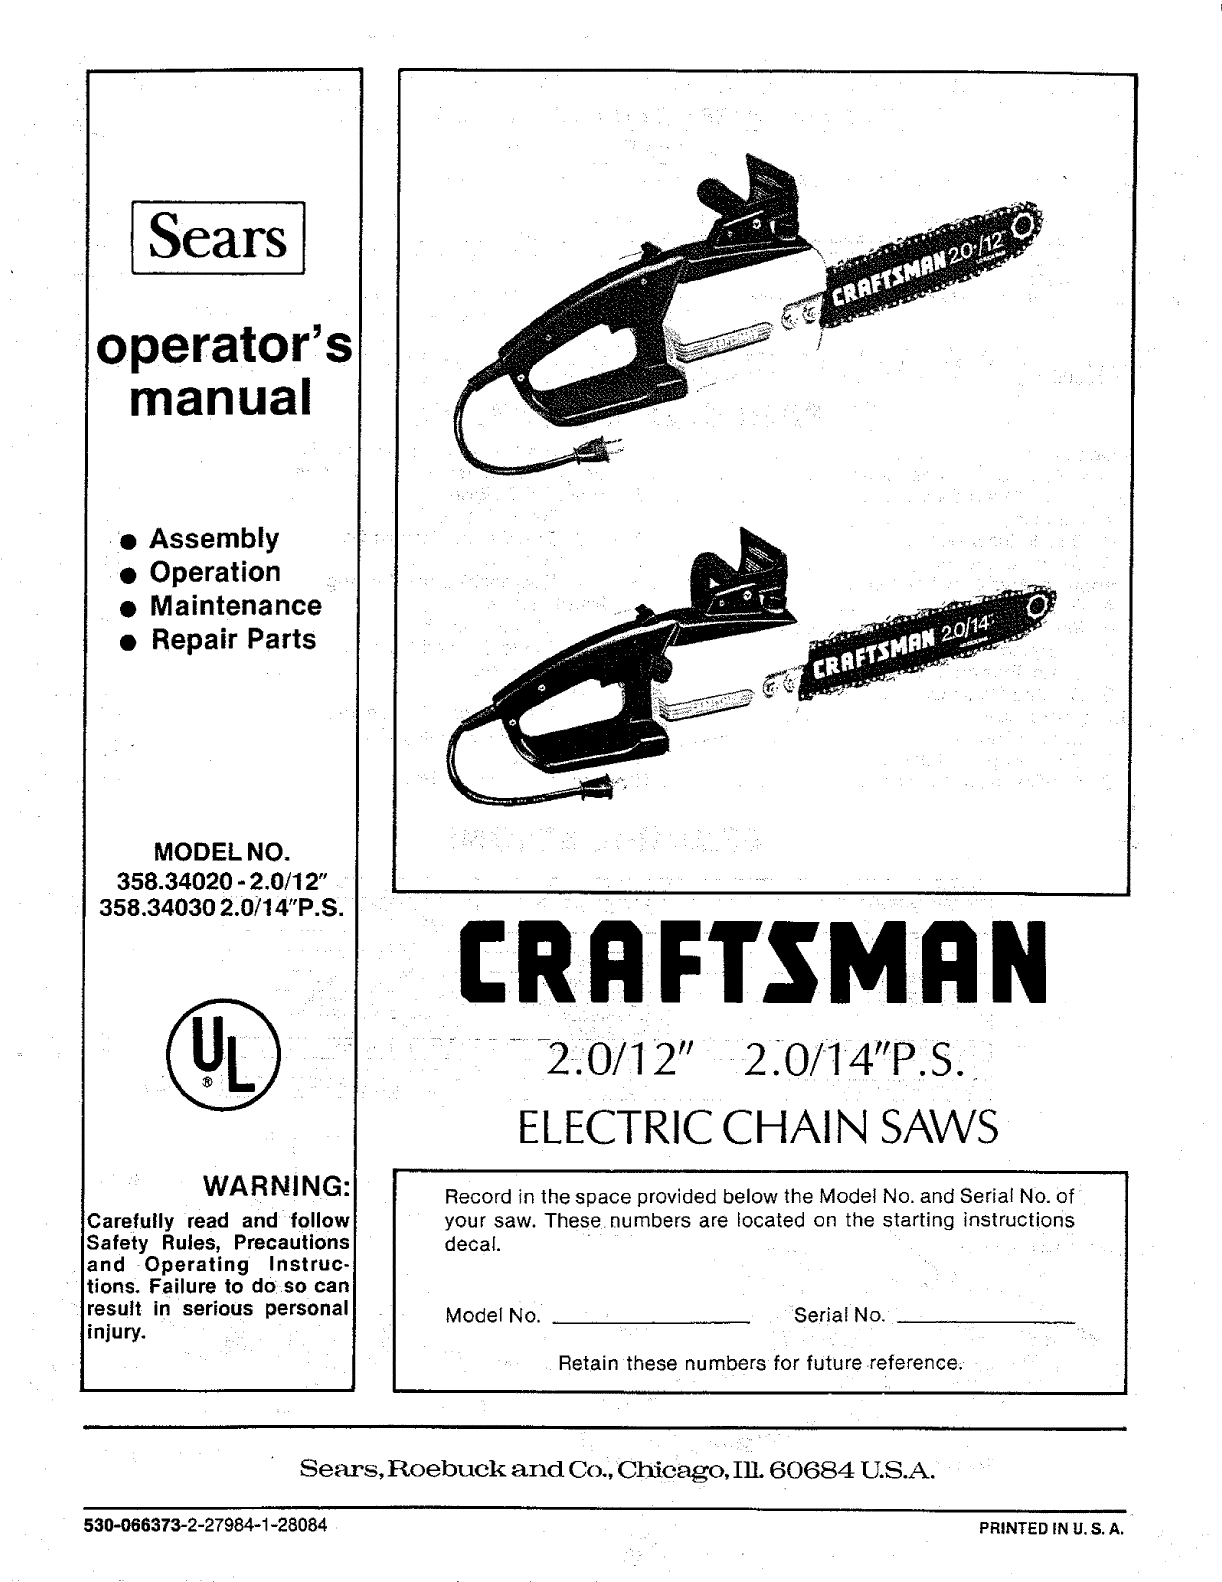 Craftsman 35834020 user manual electric chain saws manuals and craftsman 35834020 user manual electric chain saws manuals and guides l0902472 greentooth Images